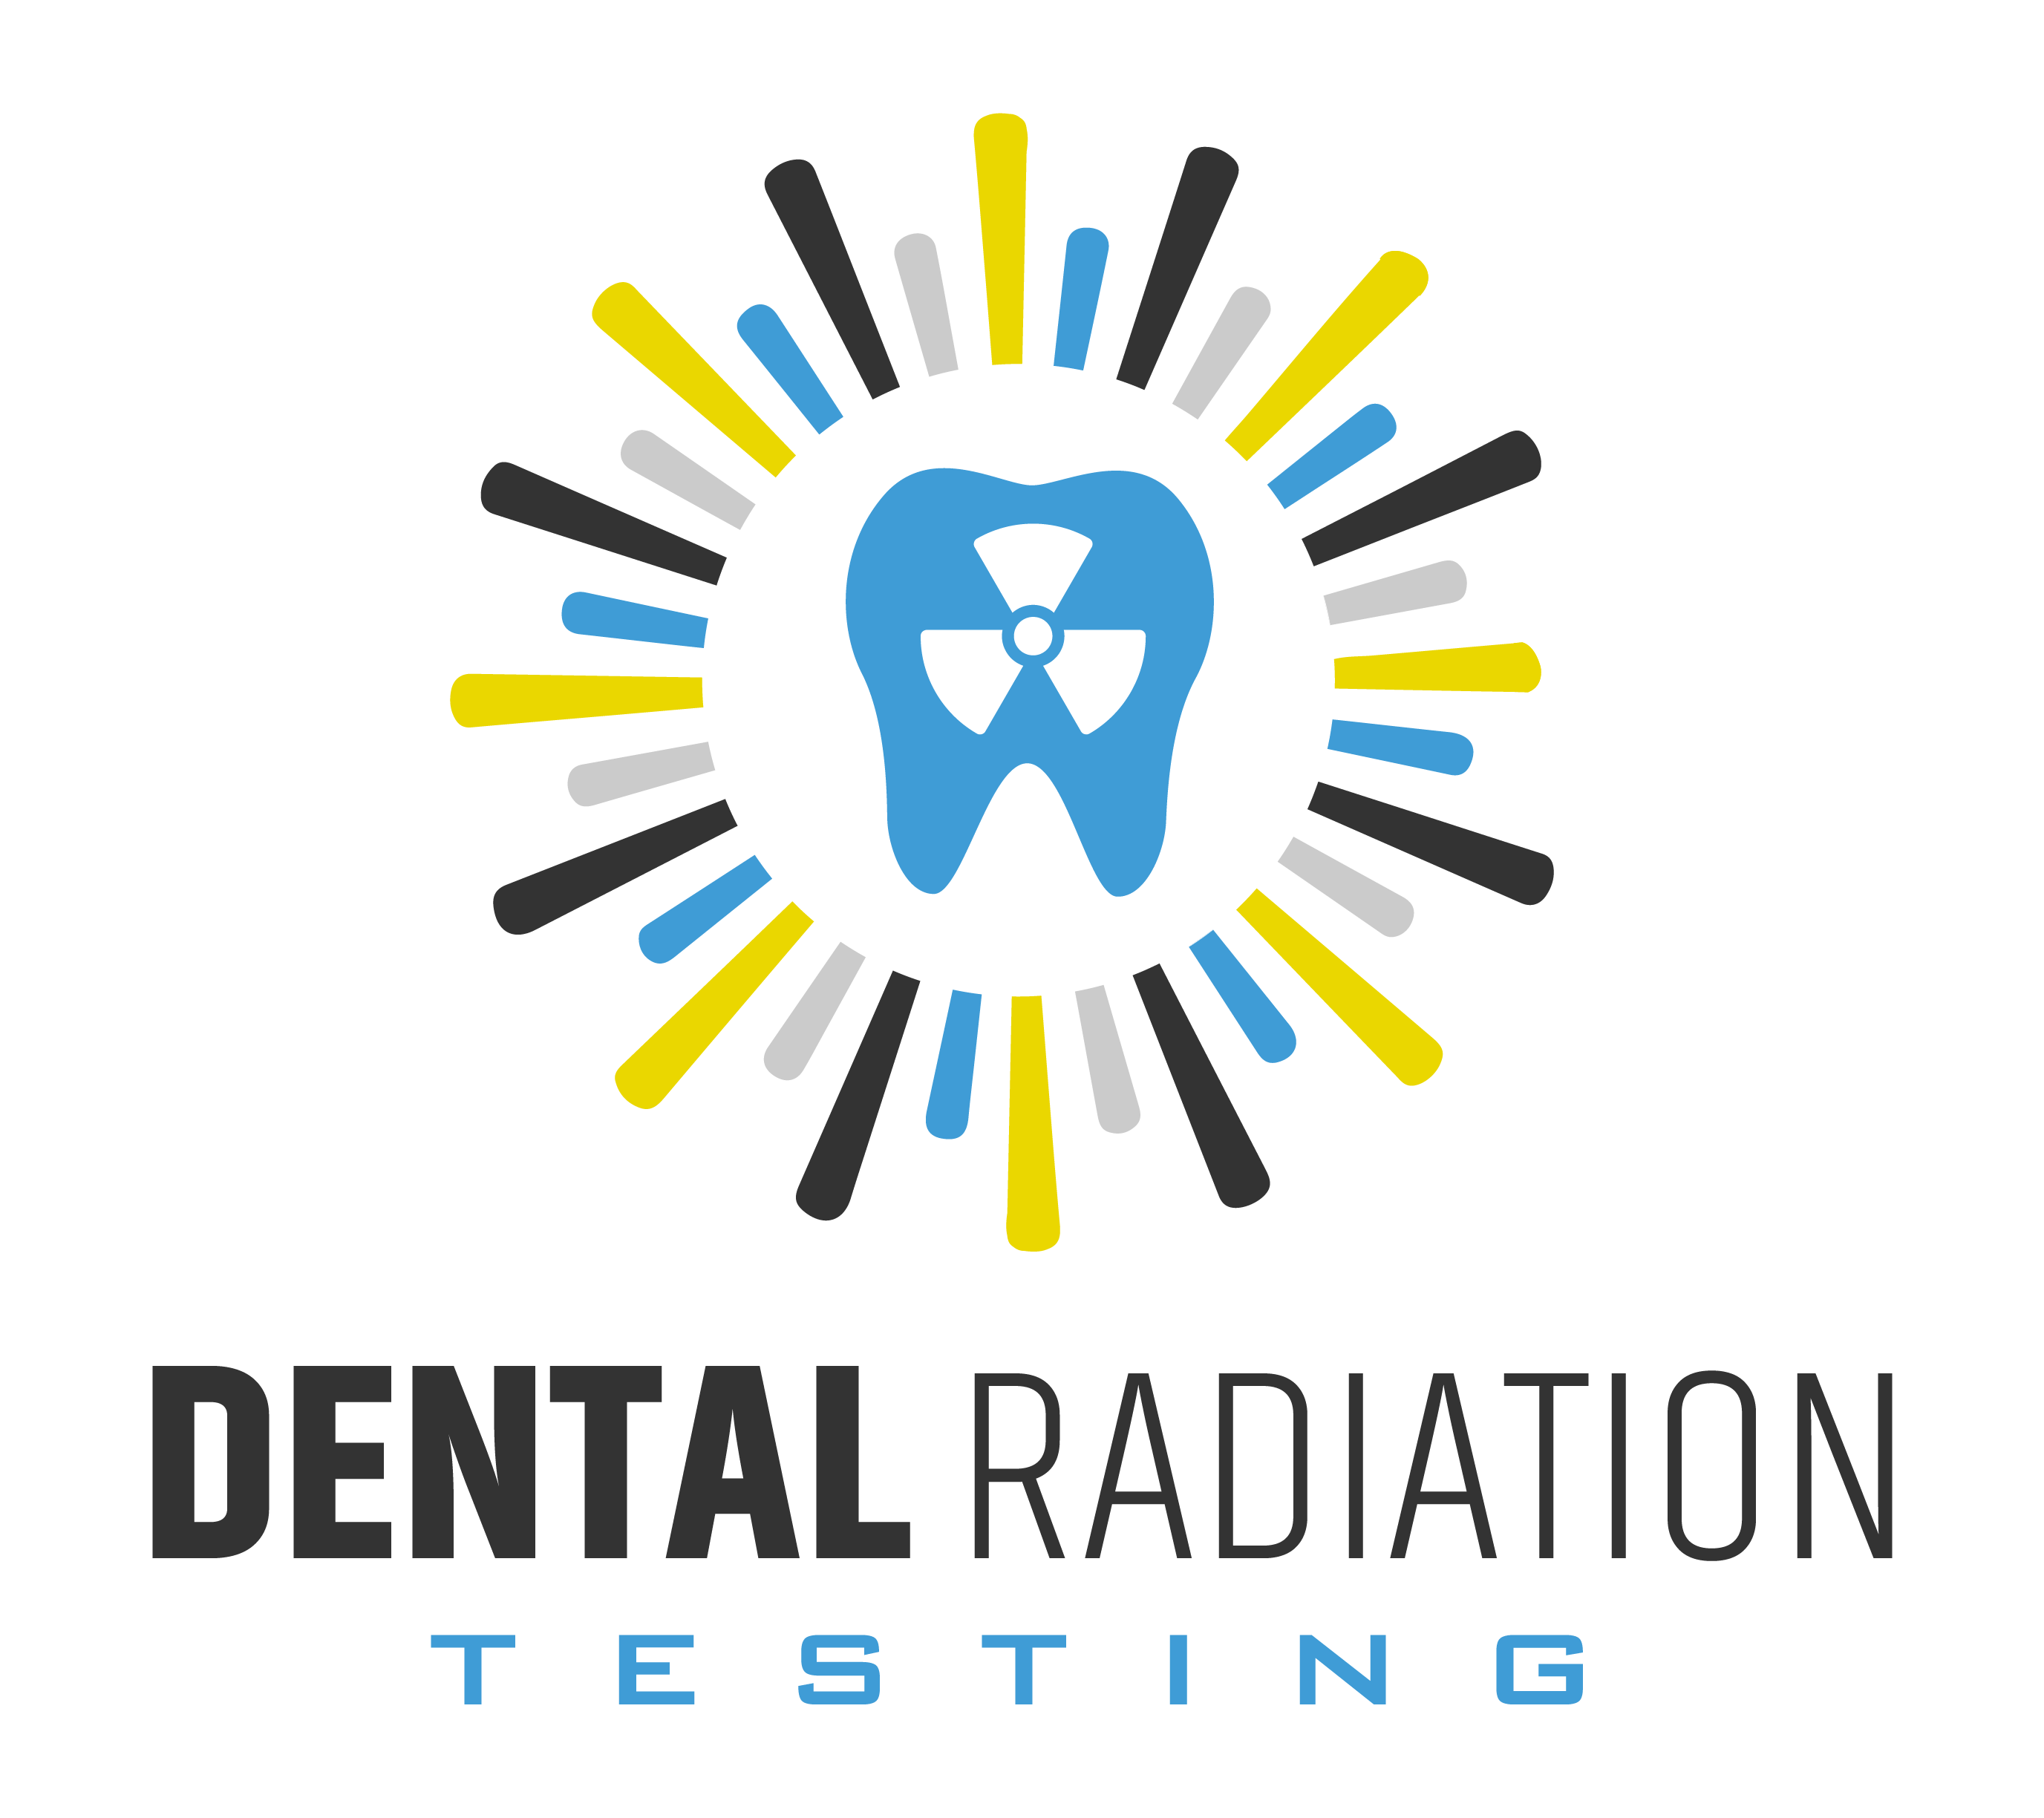 Dental Radiation Testing